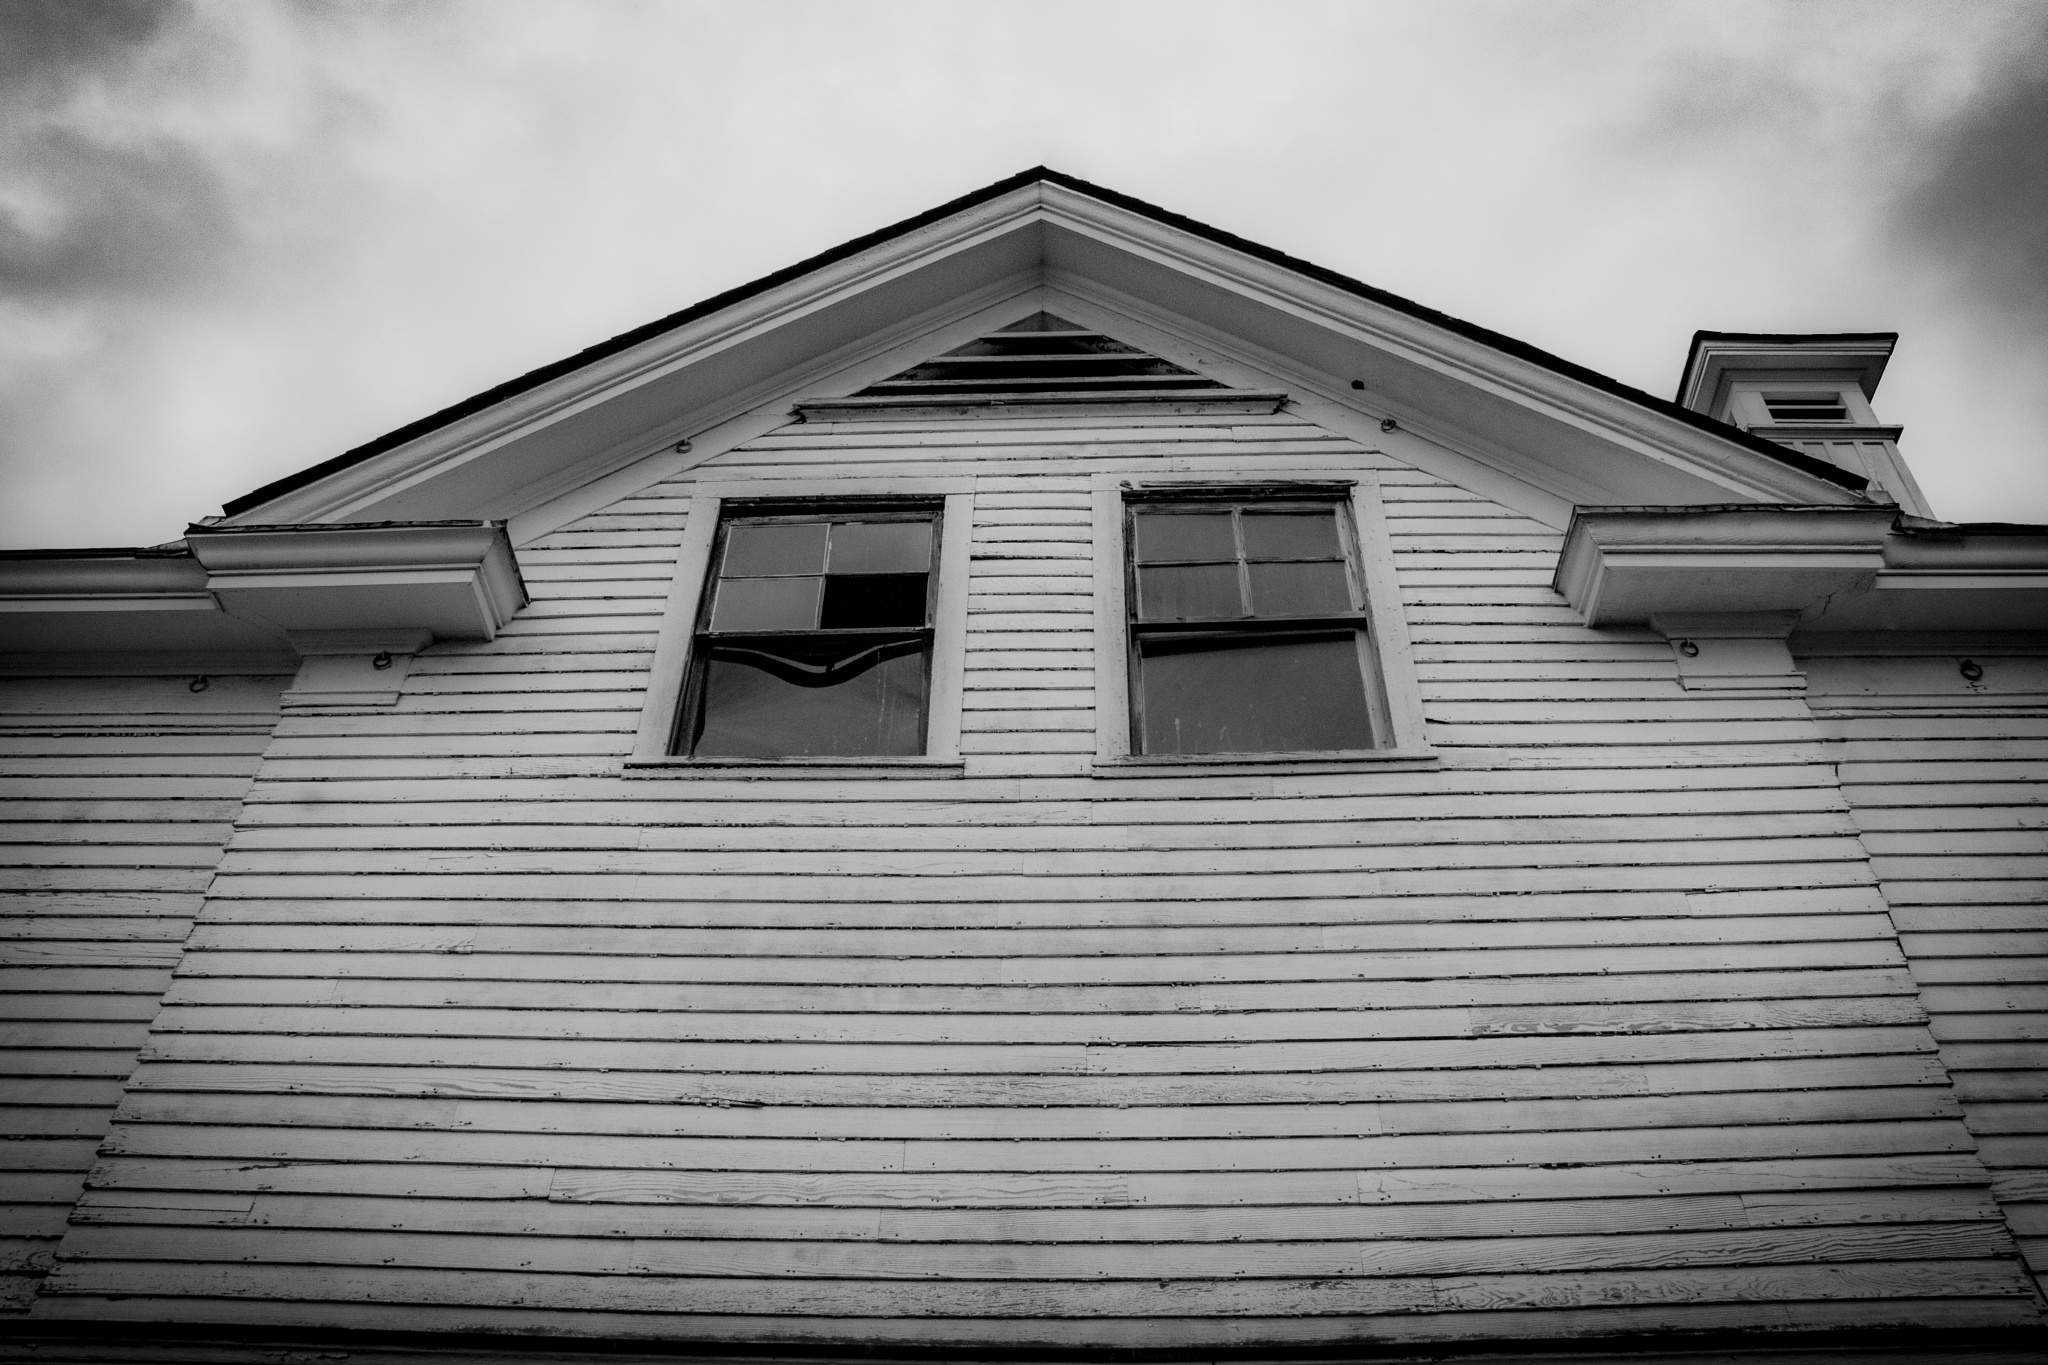 Creepy Abandoned house by Kasey Levine Hilleary